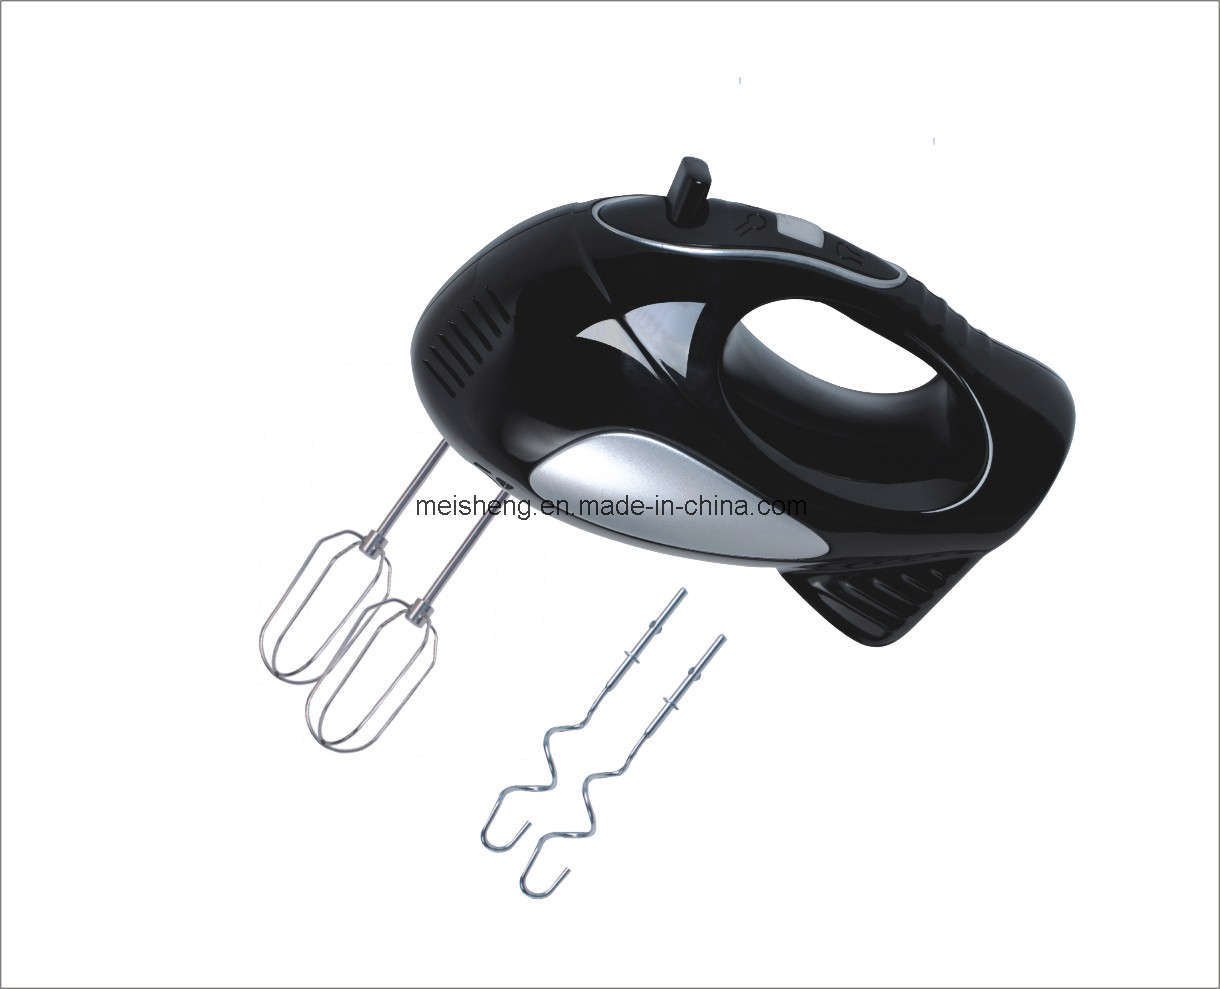 Electric Hand Mixer ~ China electric hand mixer hm c